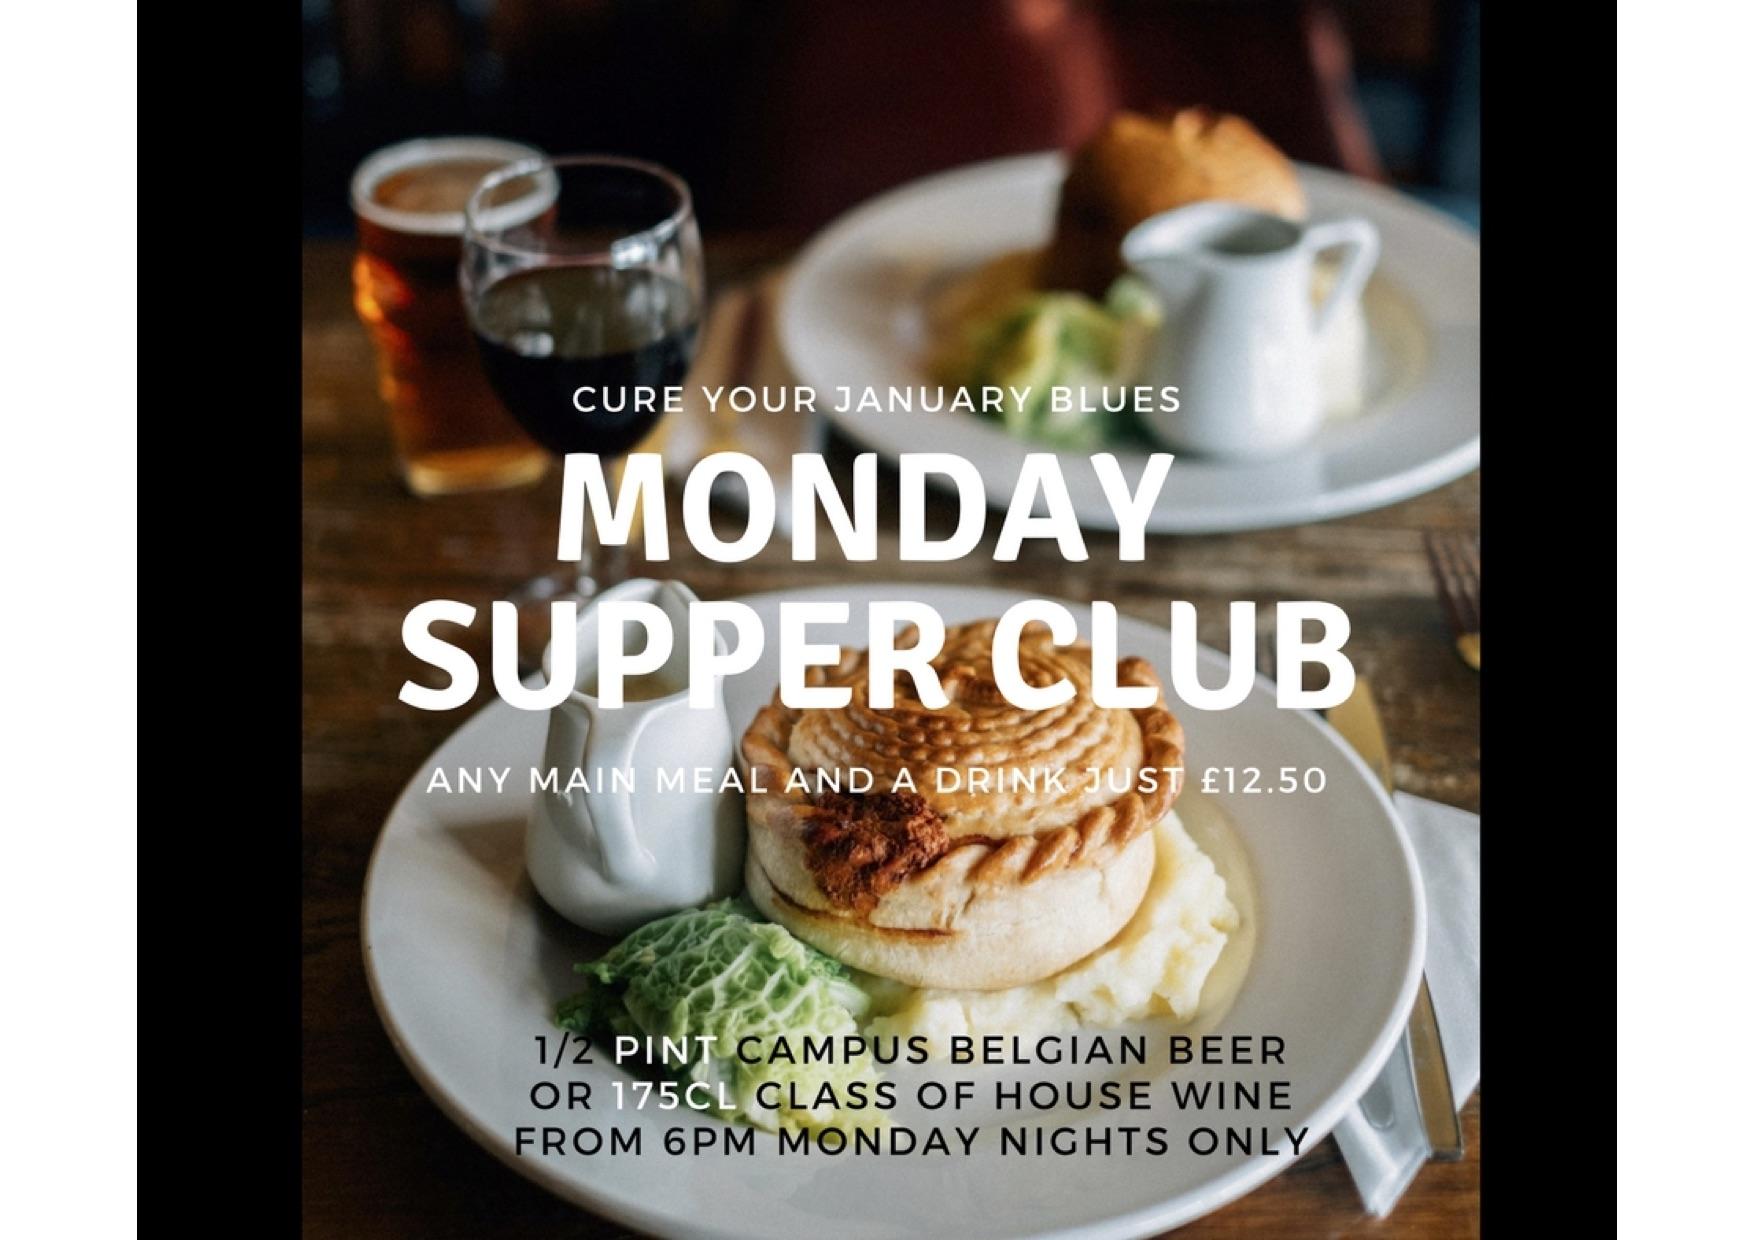 monday supper club.jpg